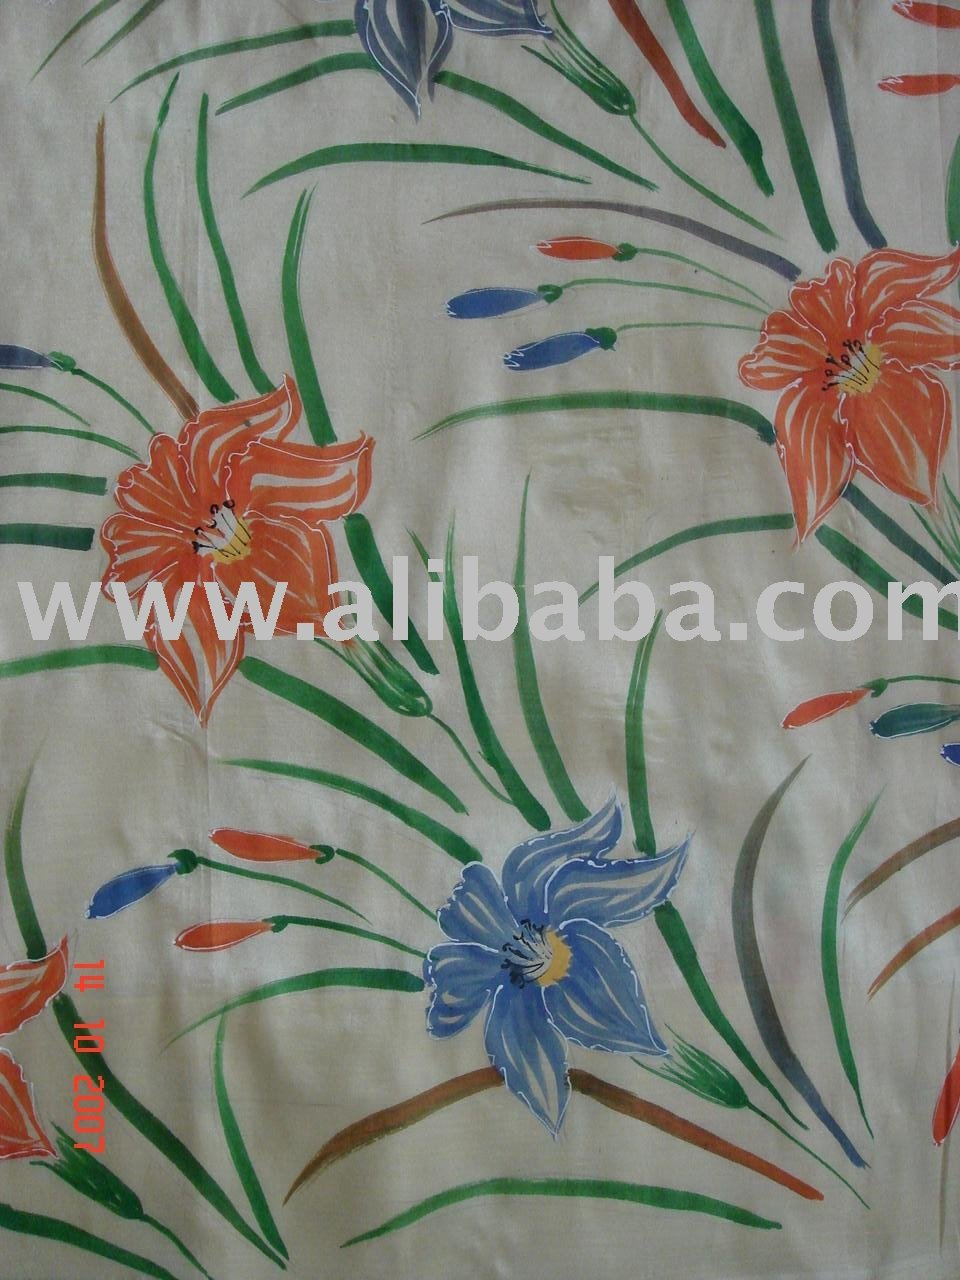 Bed sheets designs fabric painting - Bed Sheets Designs Fabric Painting 58